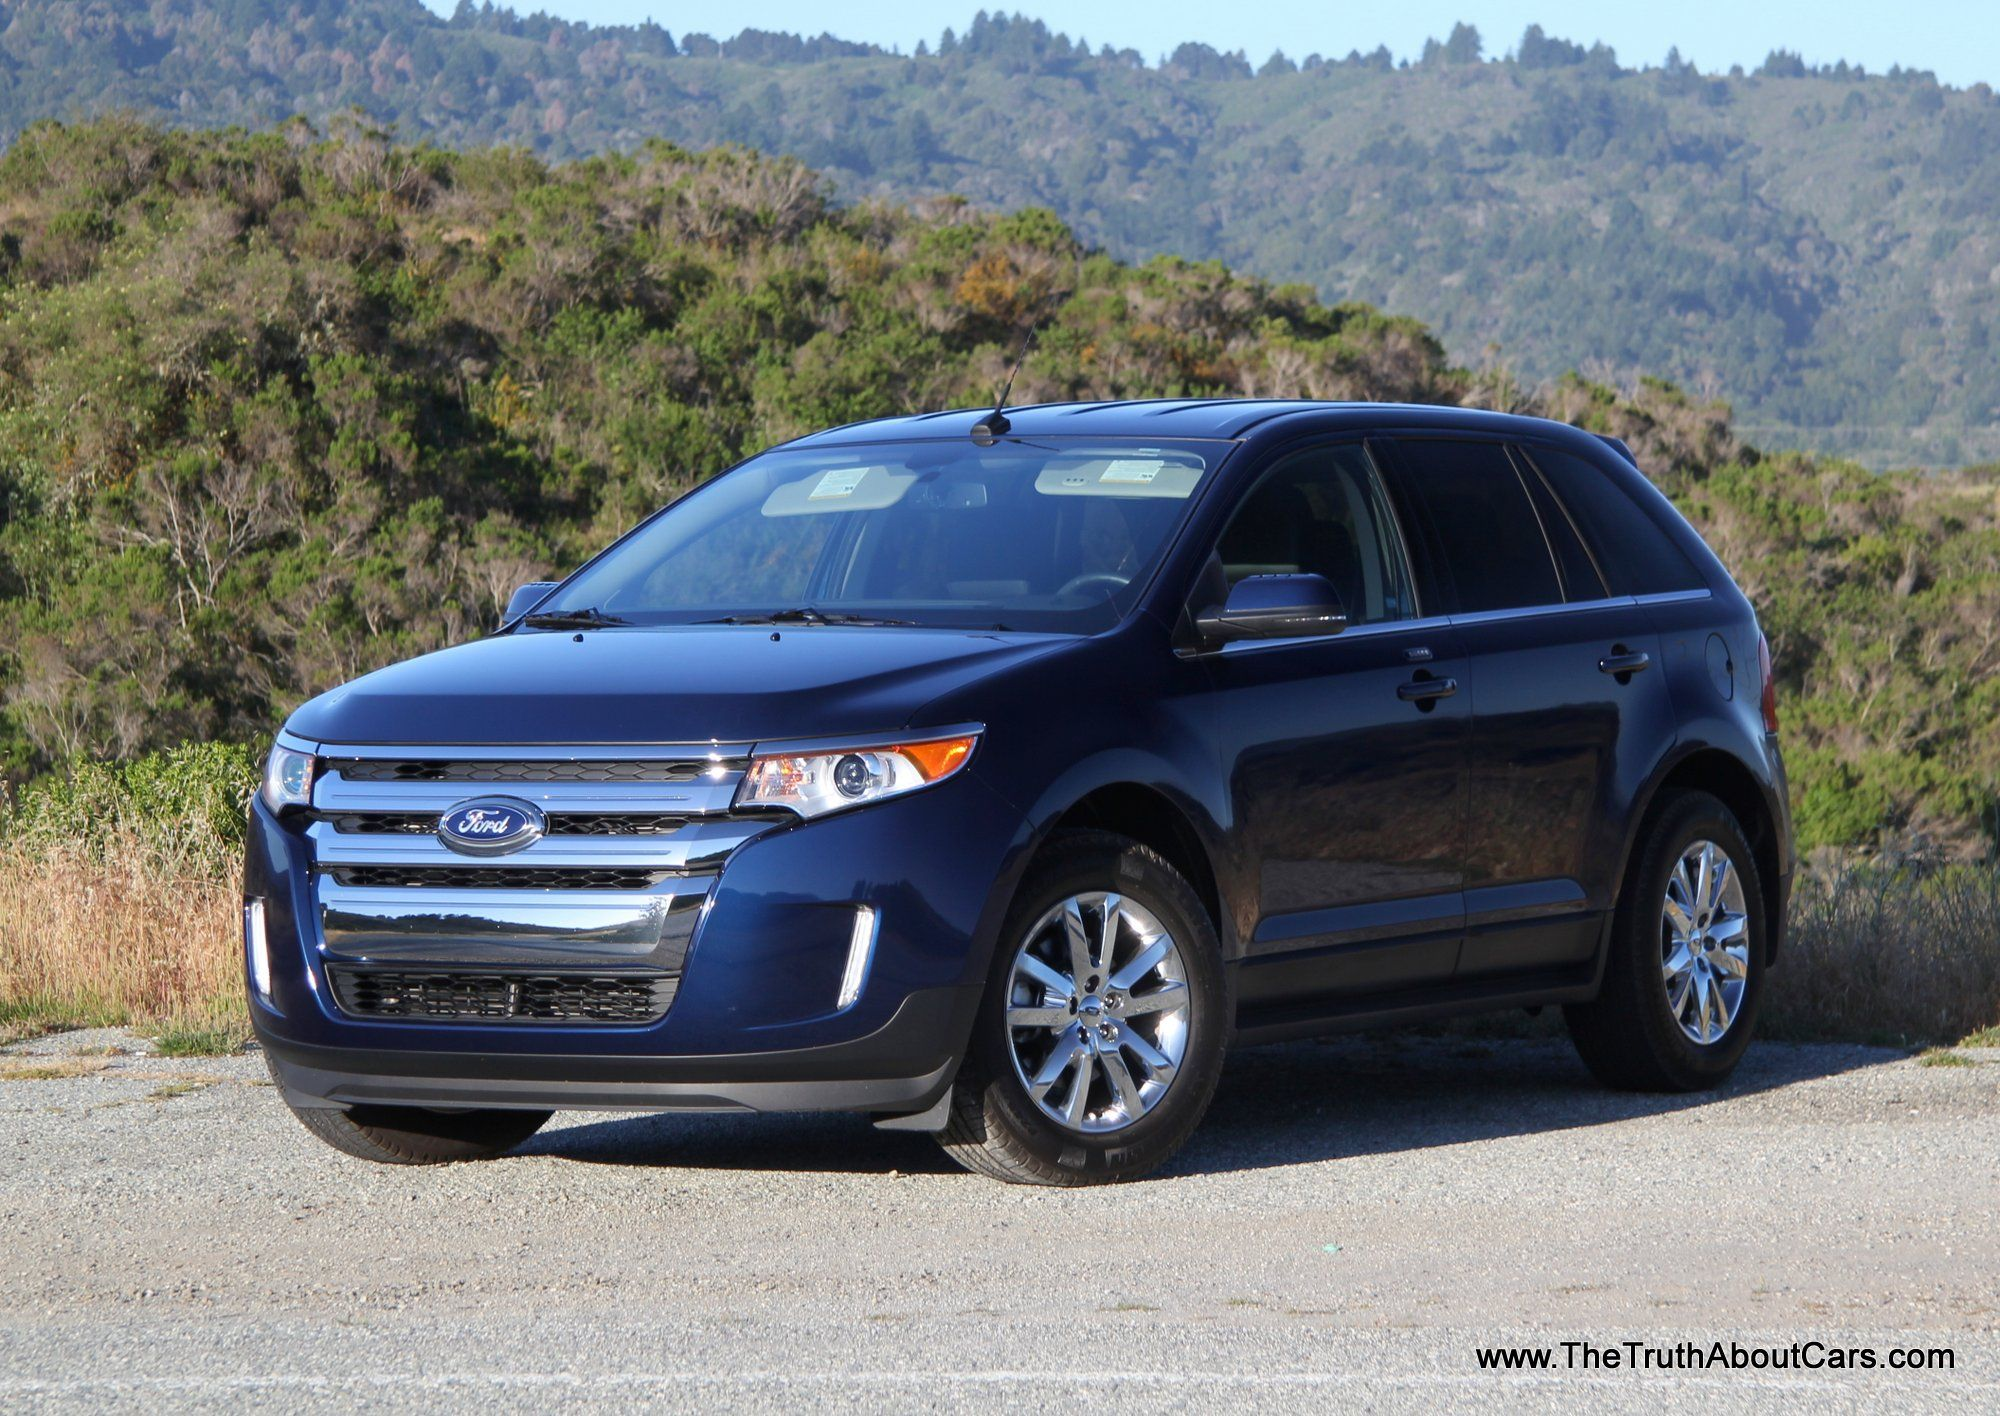 1000 images about ford edge on pinterest cars car images and blue colors